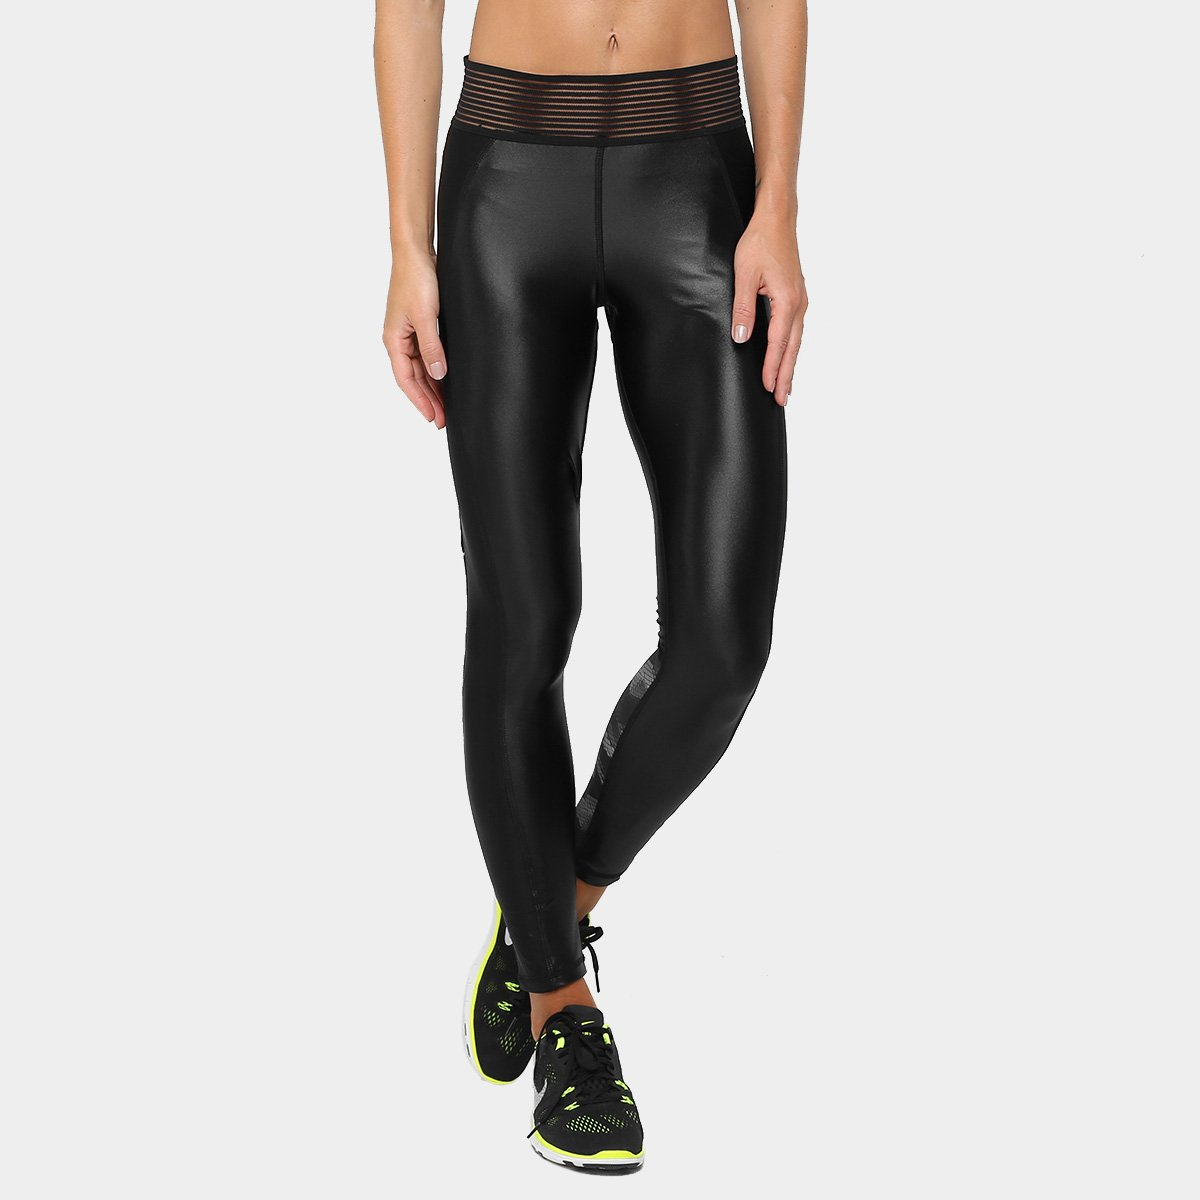 We e Fit Feminina Legging Legging Chumbo Active Calça We Preto Calça nCaxZ6